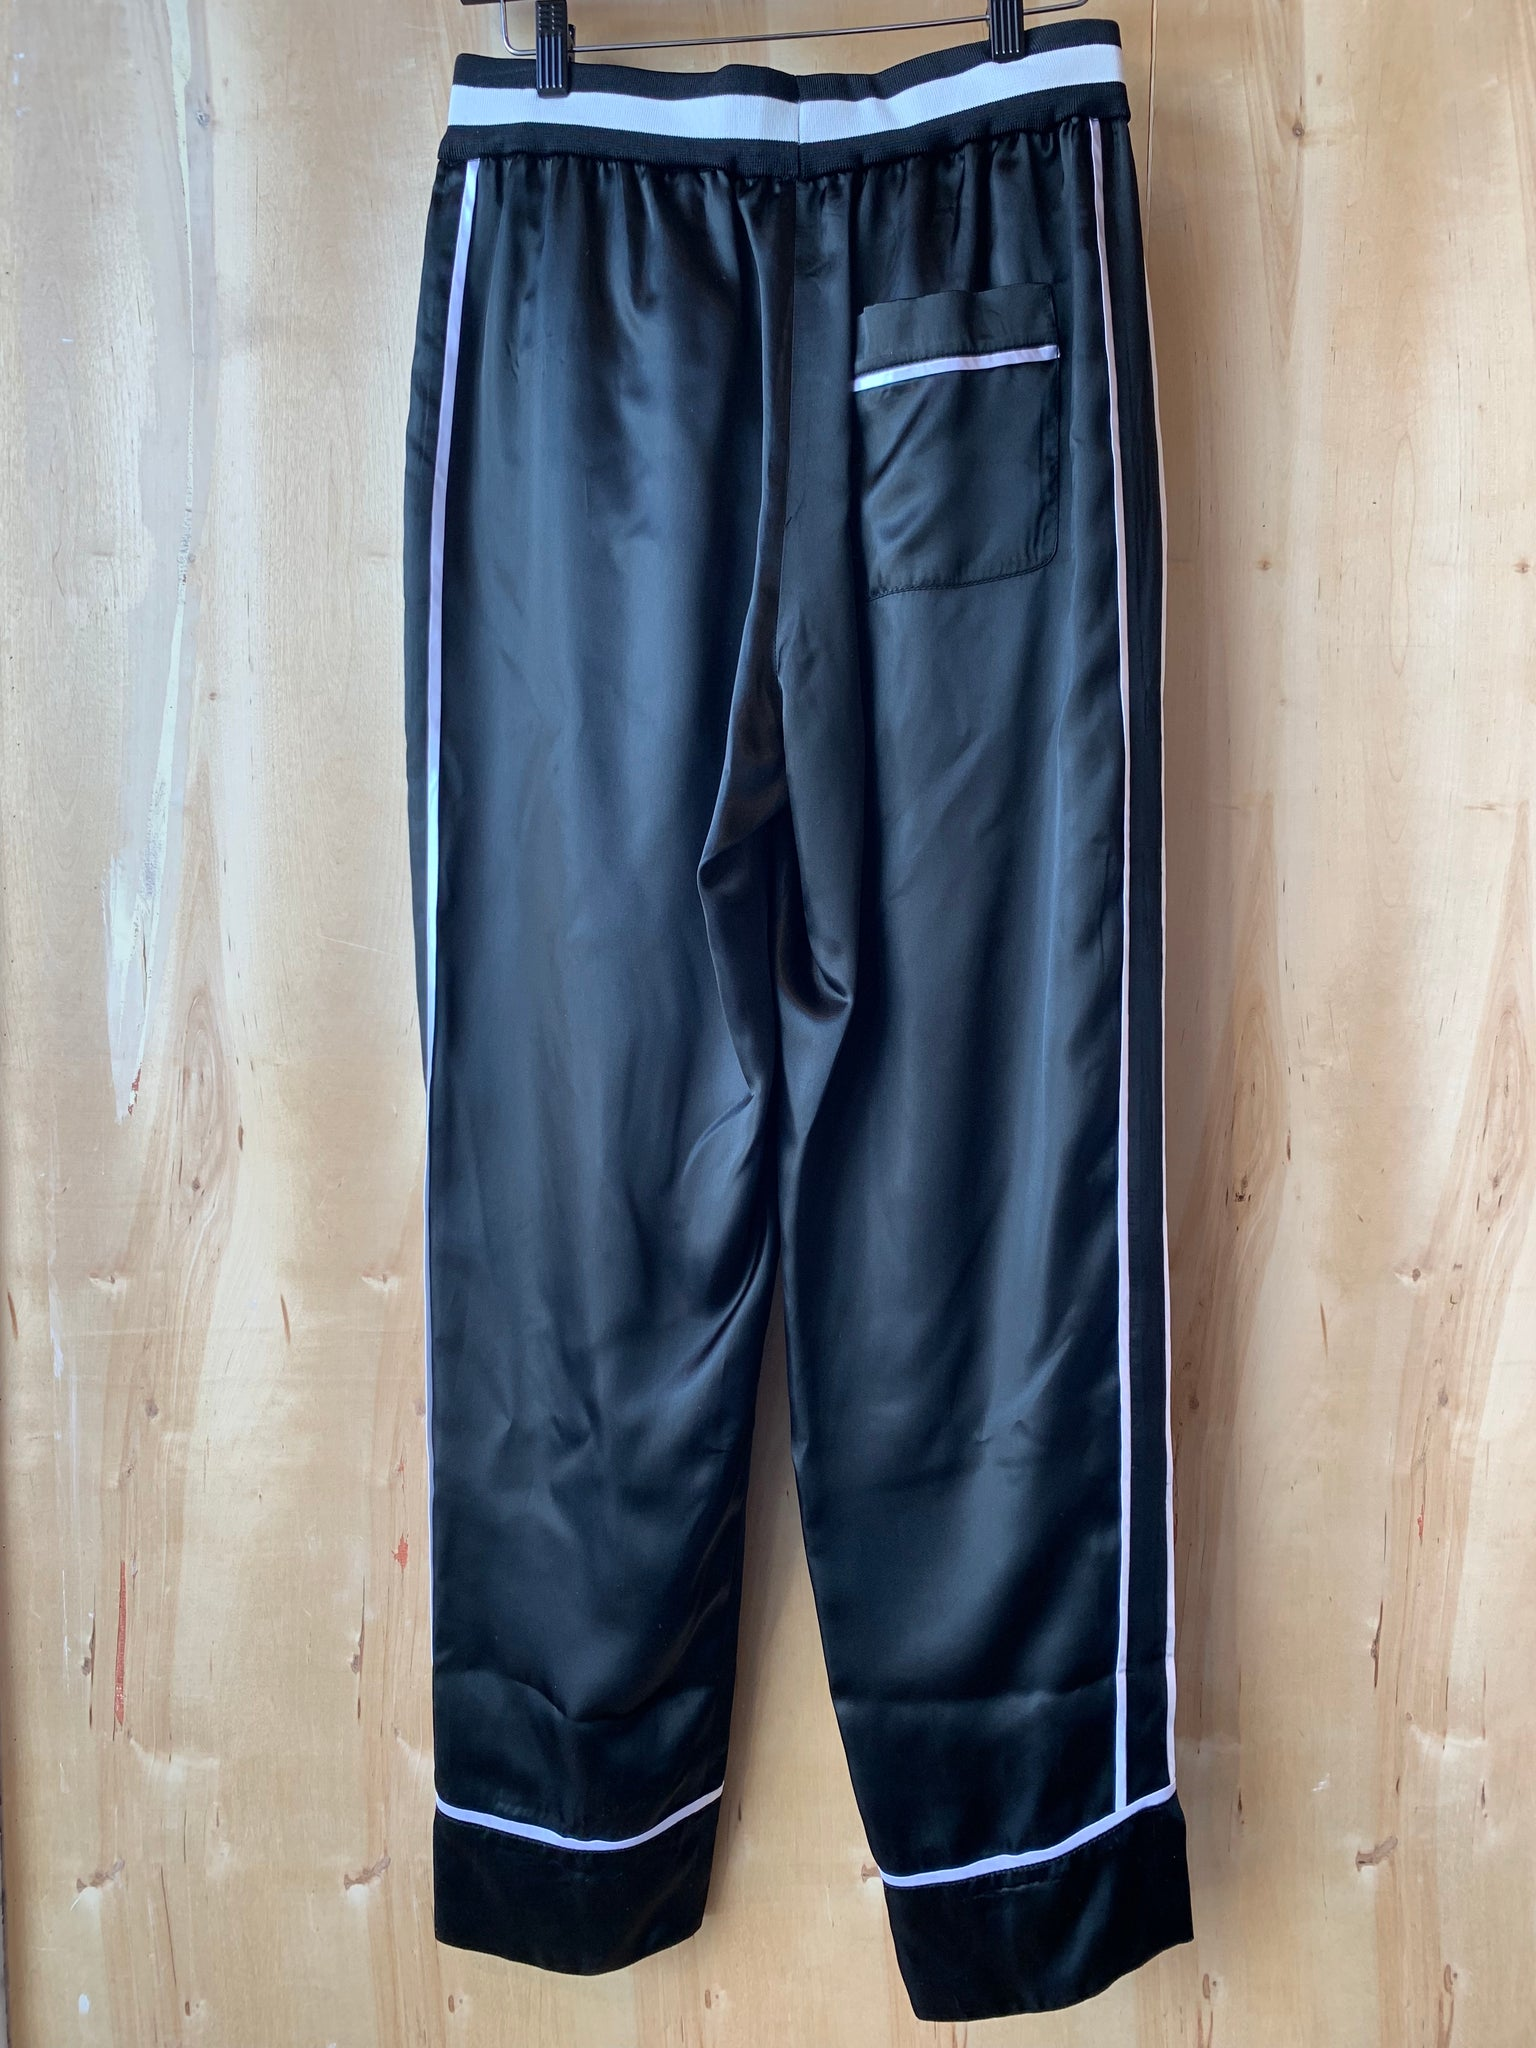 Reversible Cropped Elastic Waist Pants